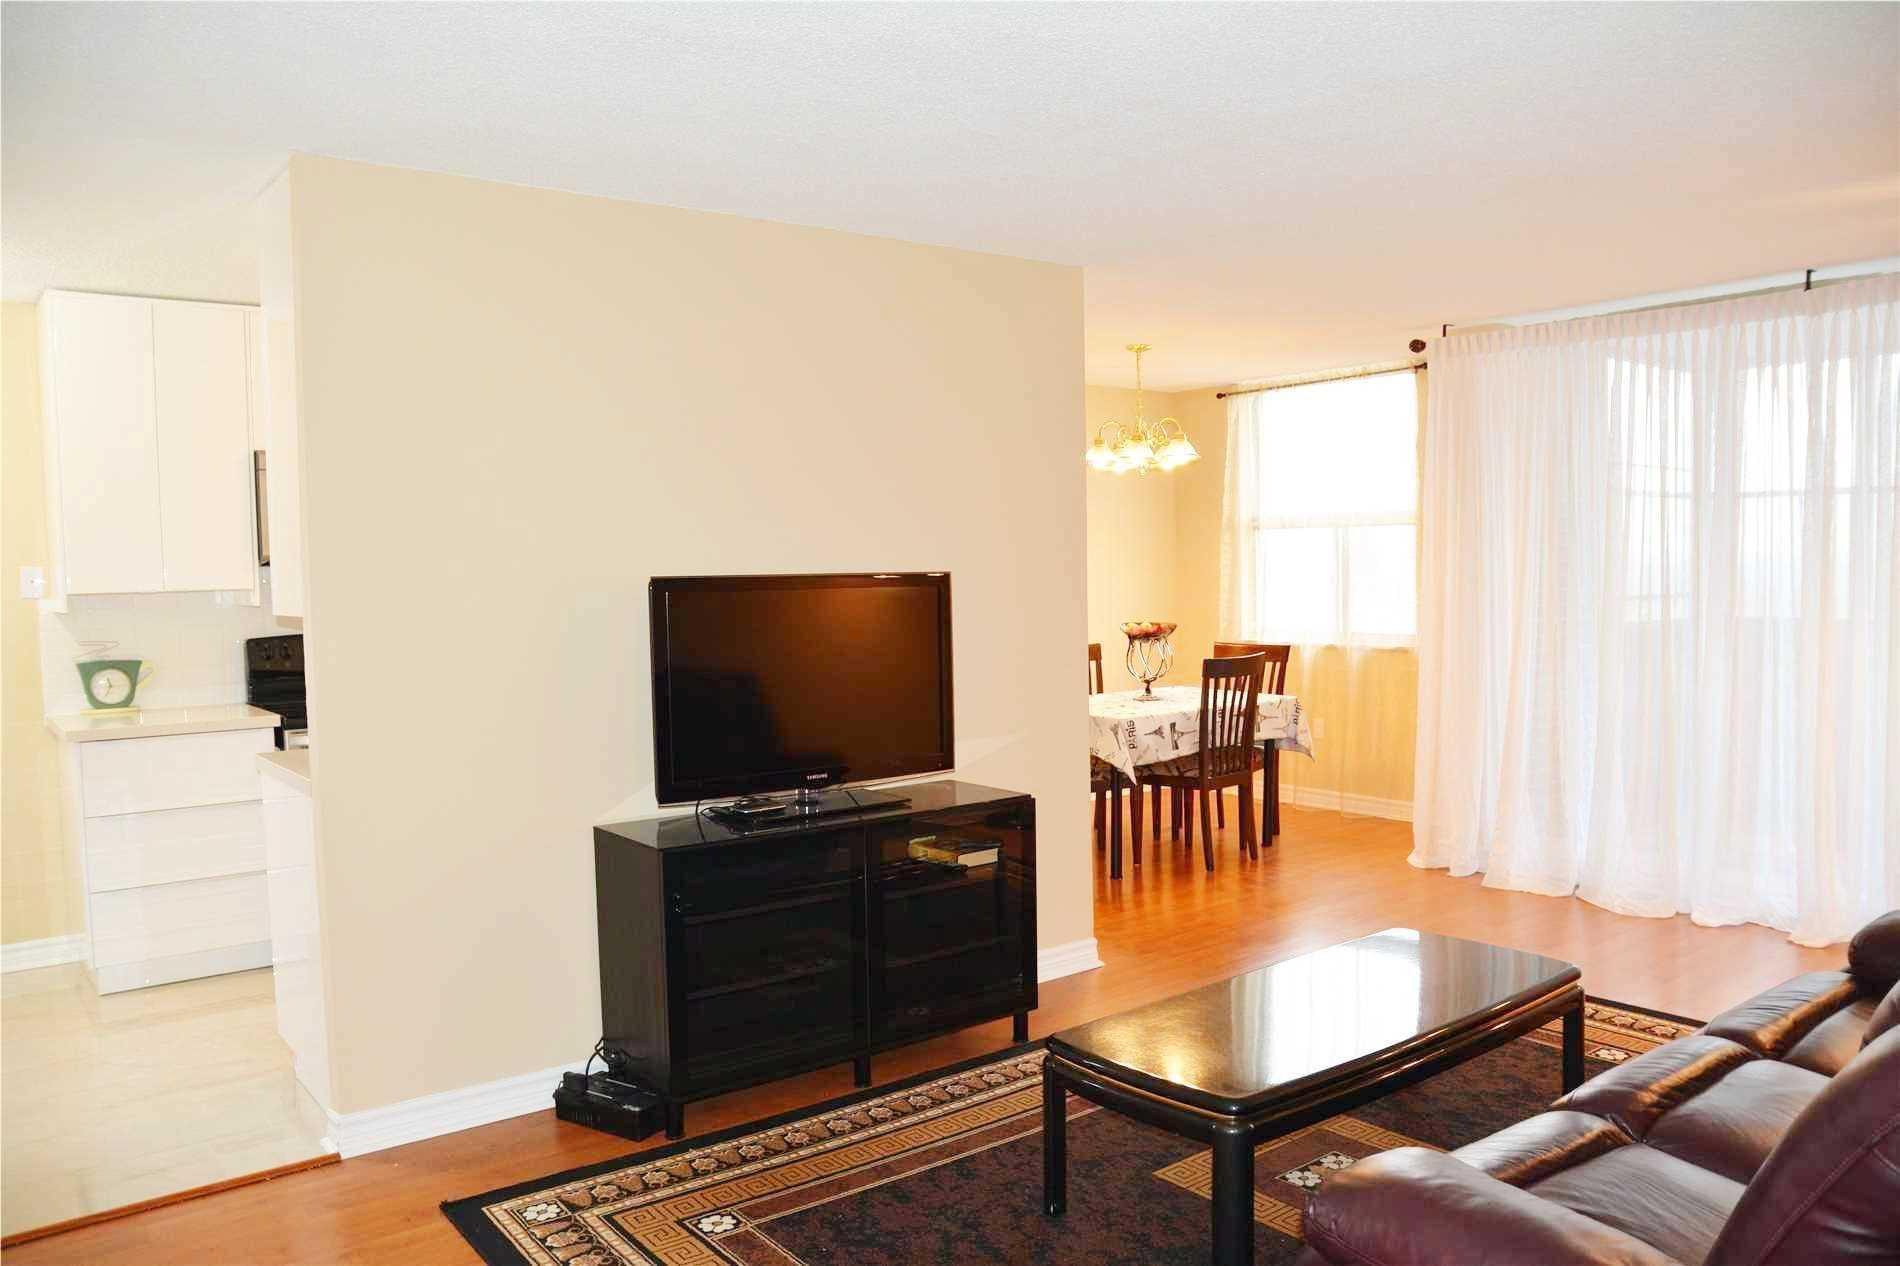 Image 9 of 14 showing inside of 3 Bedroom Condo Apt Apartment for Lease at 205 Hilda Ave Unit# 2104, Toronto M2M4B1